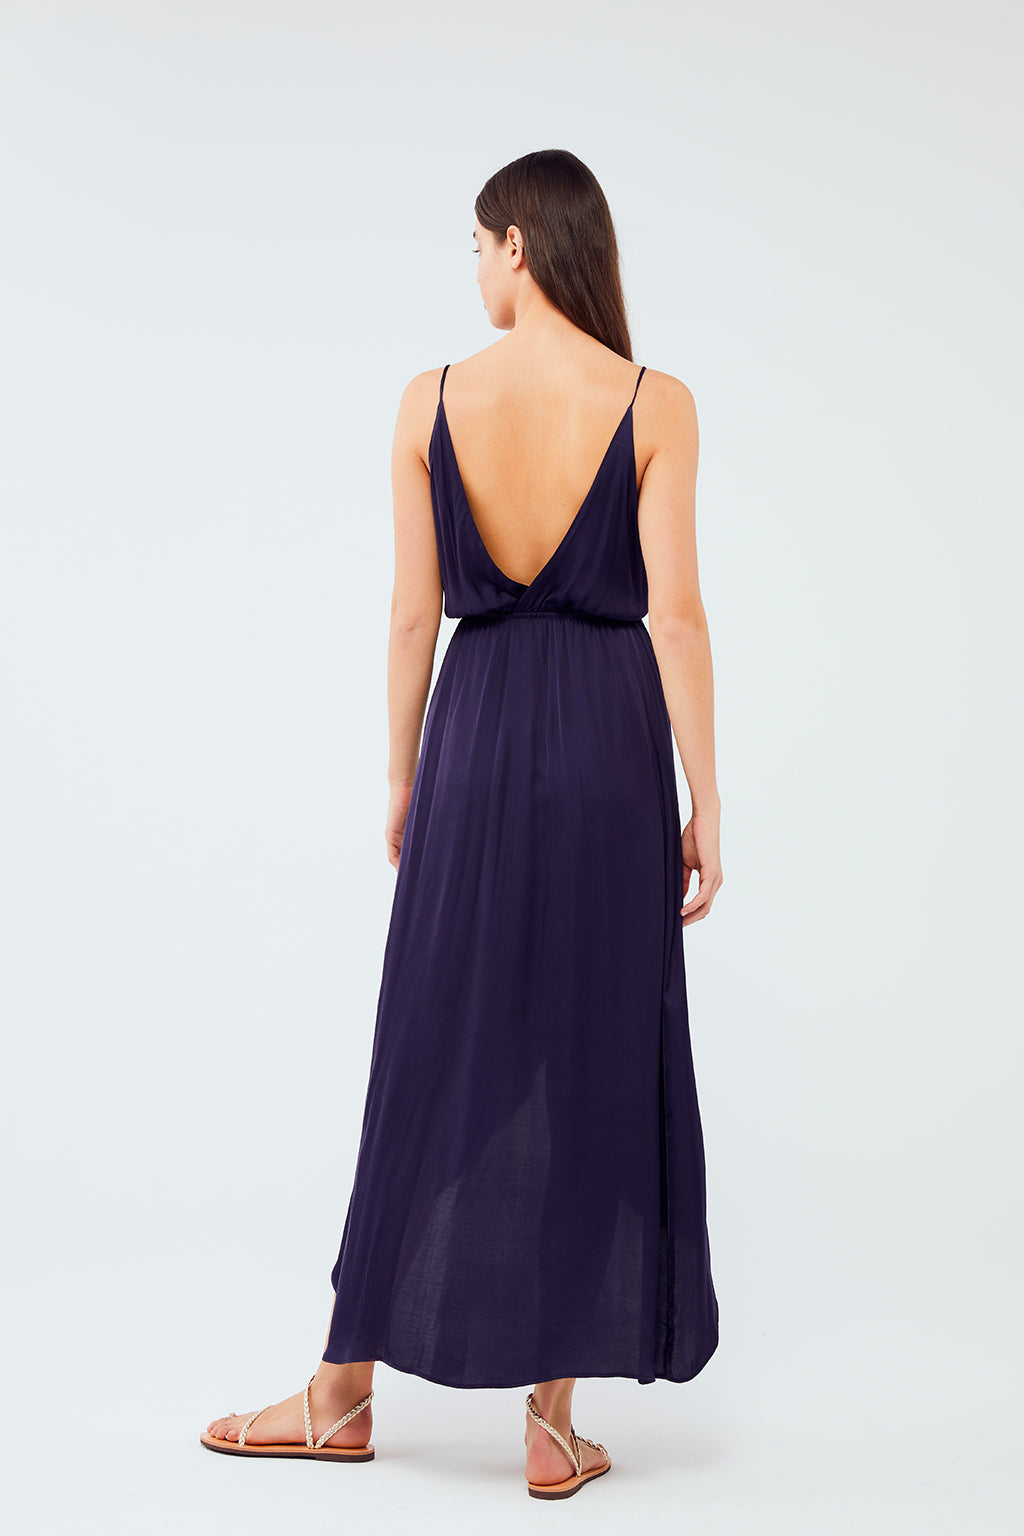 Wildwood - Orchid Dress | Navy